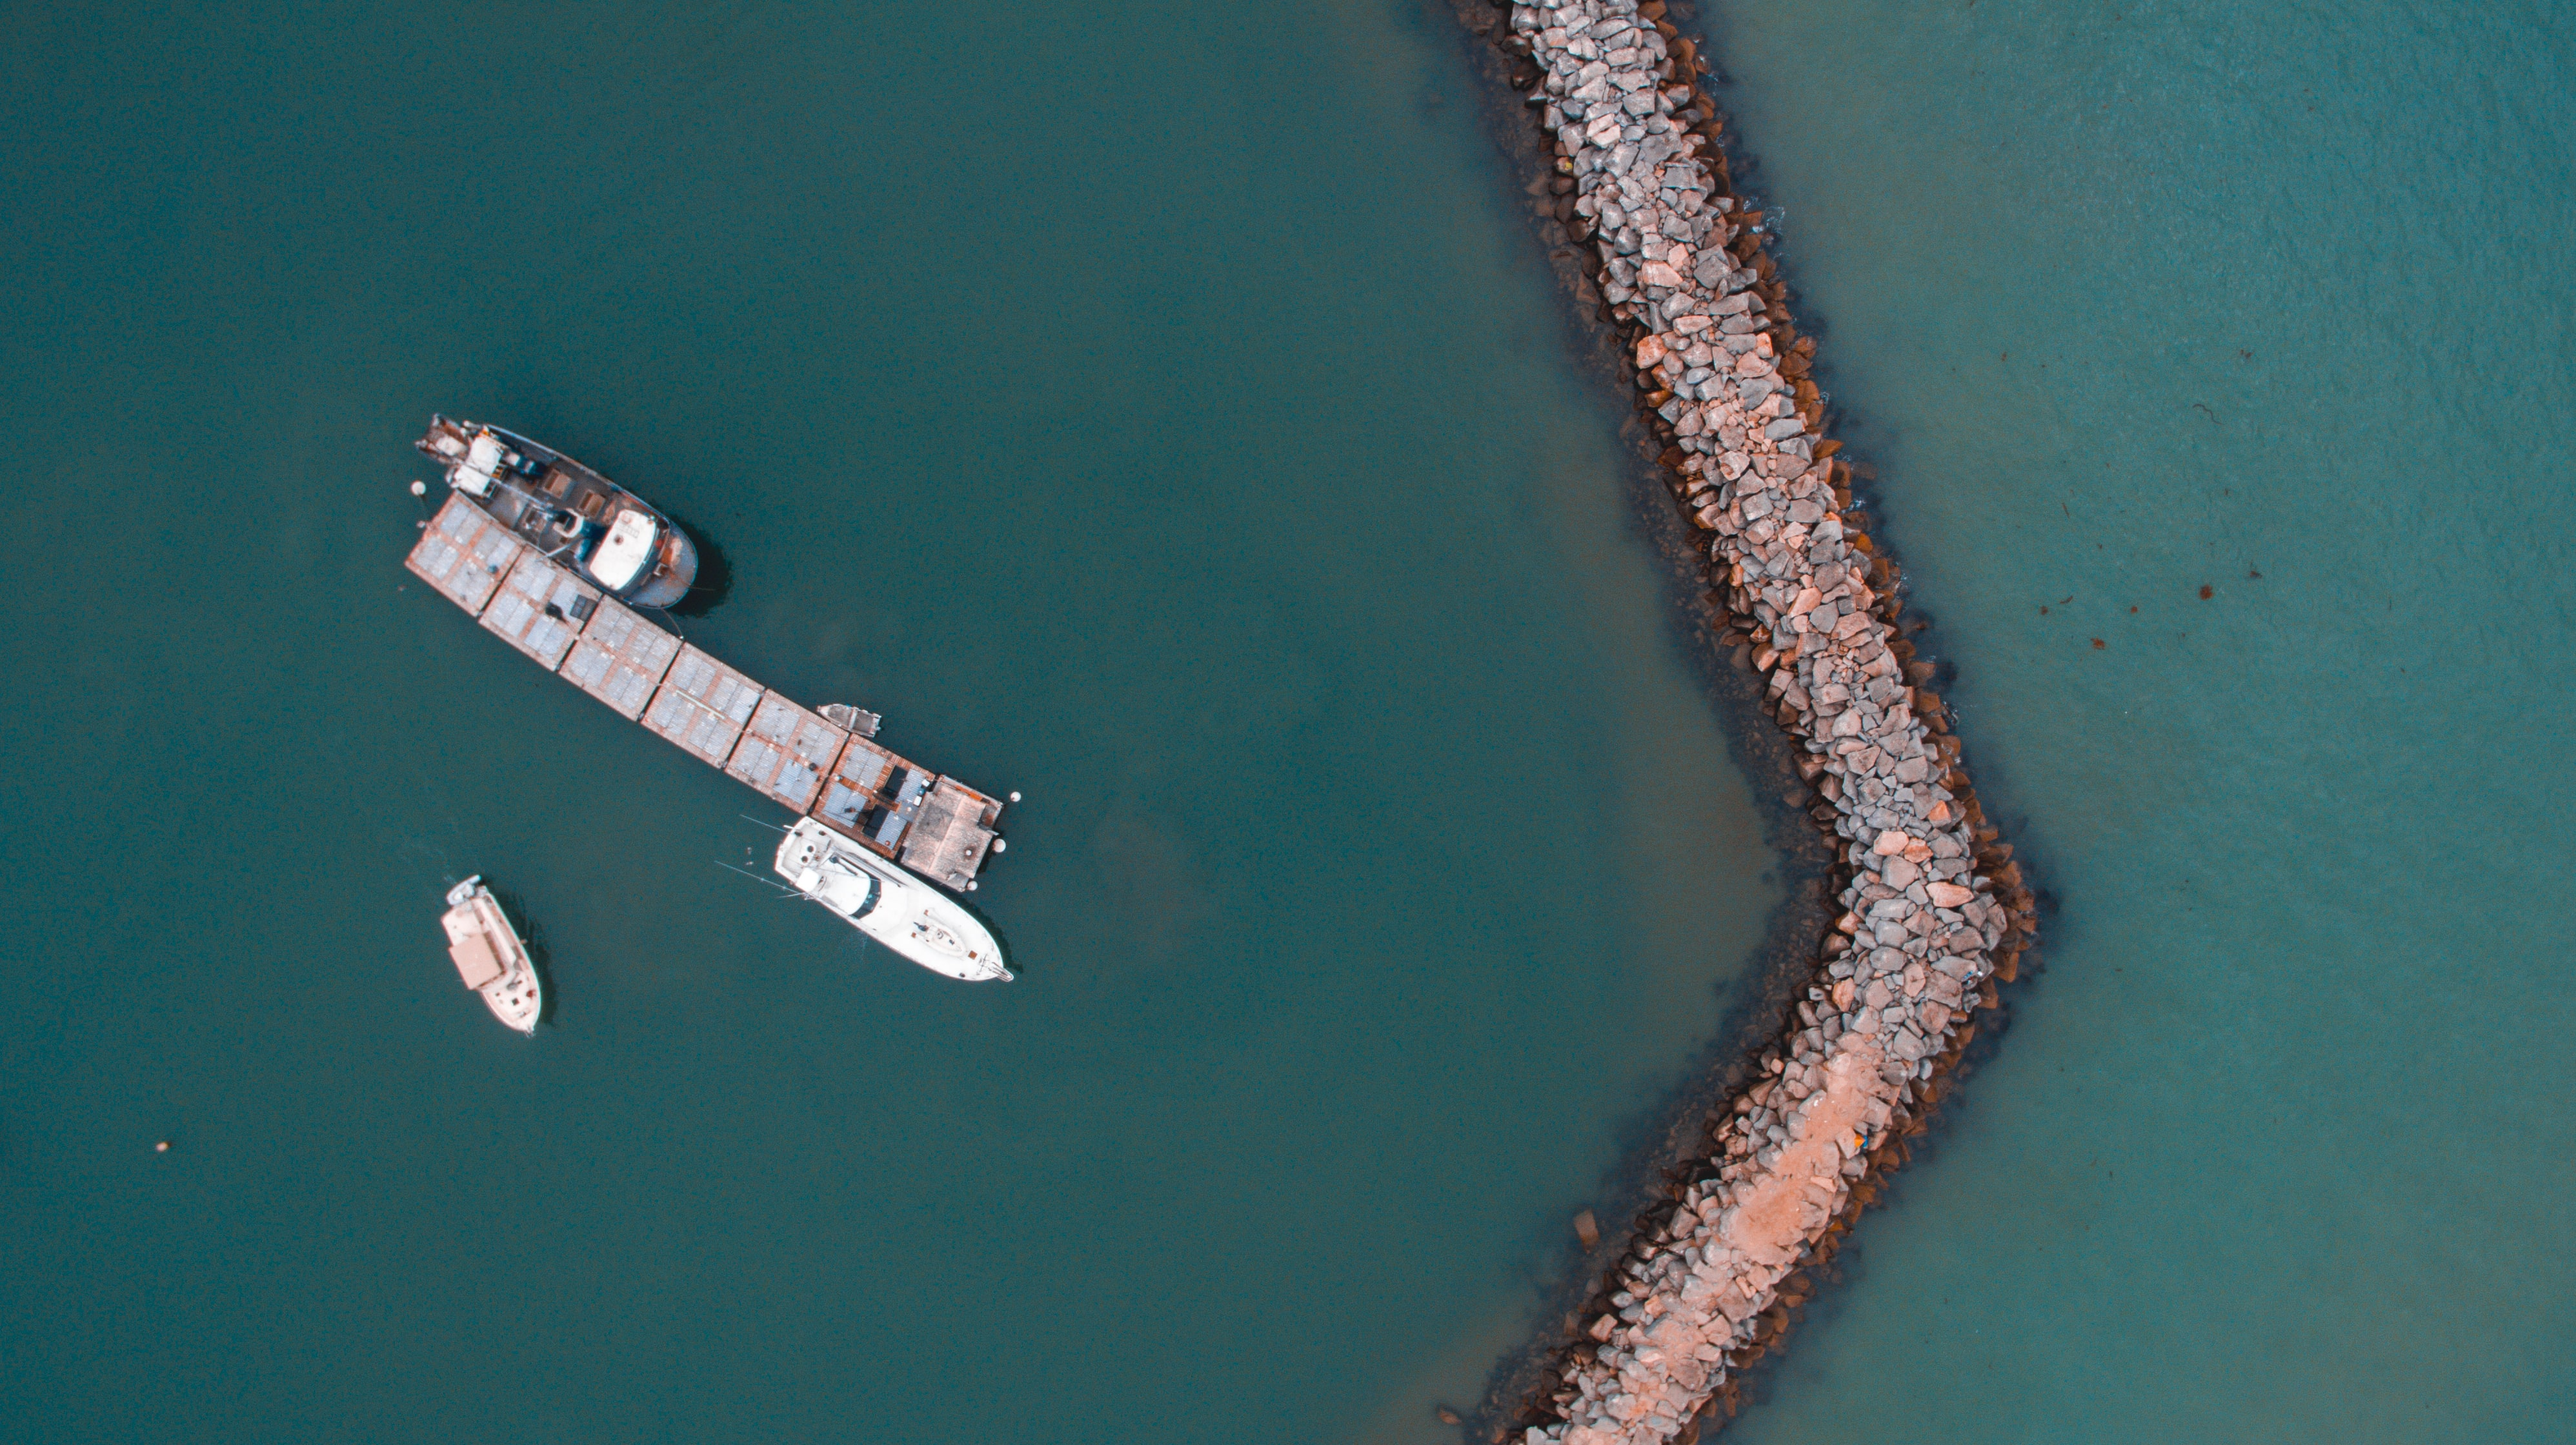 bird's eye view photography of boat near the coast